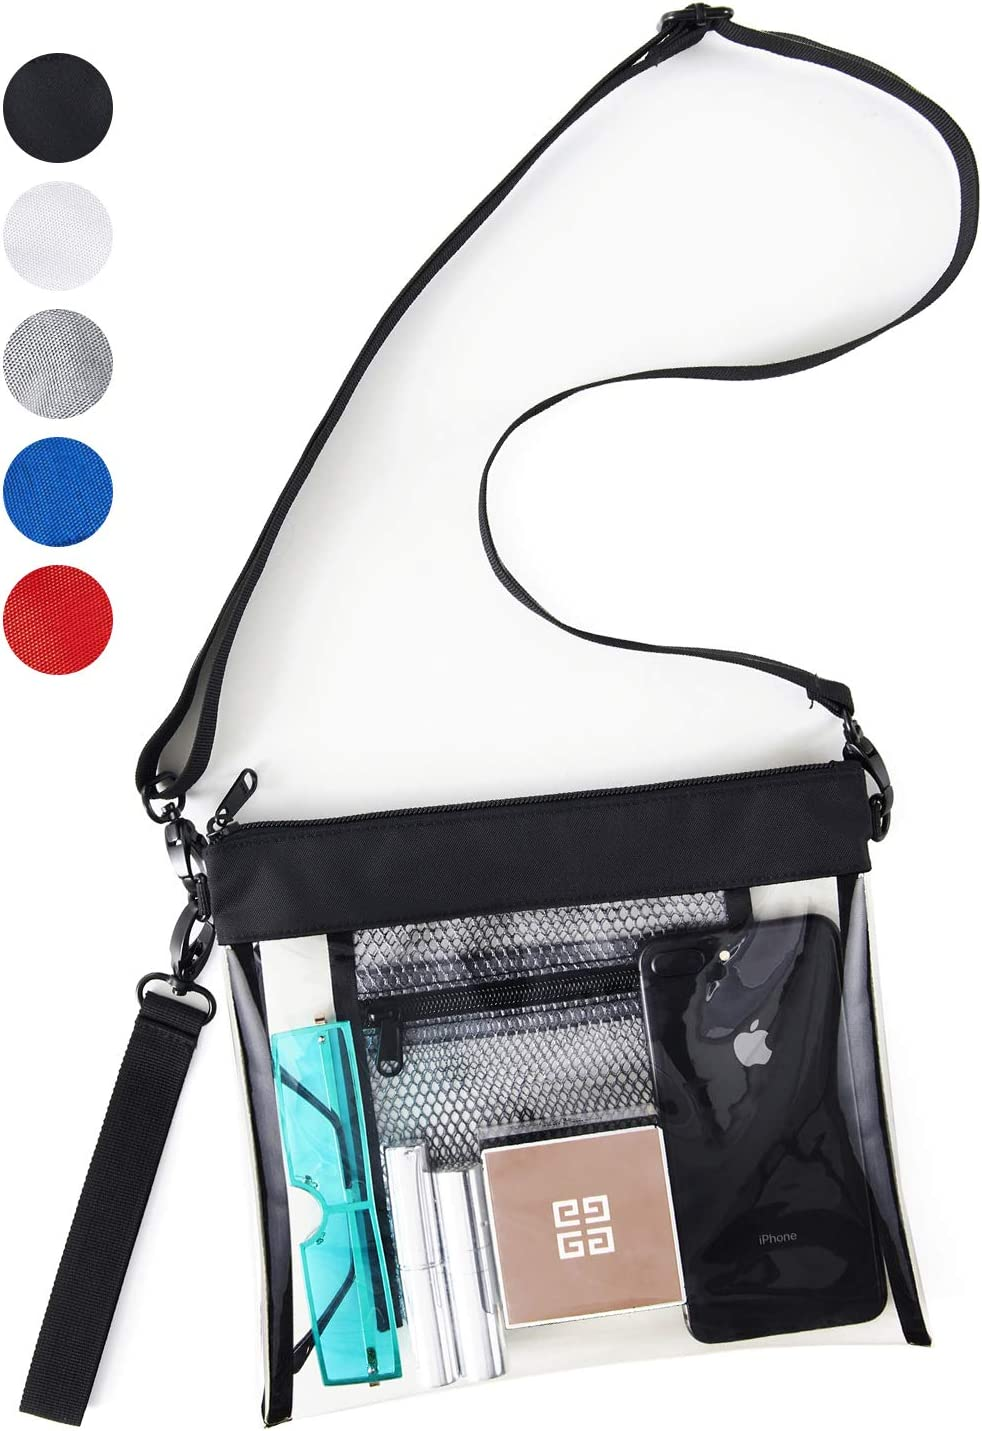 TPU Clear Cross-Body Purse Stadium Approves Clear Bag with Inner Pocket Sports